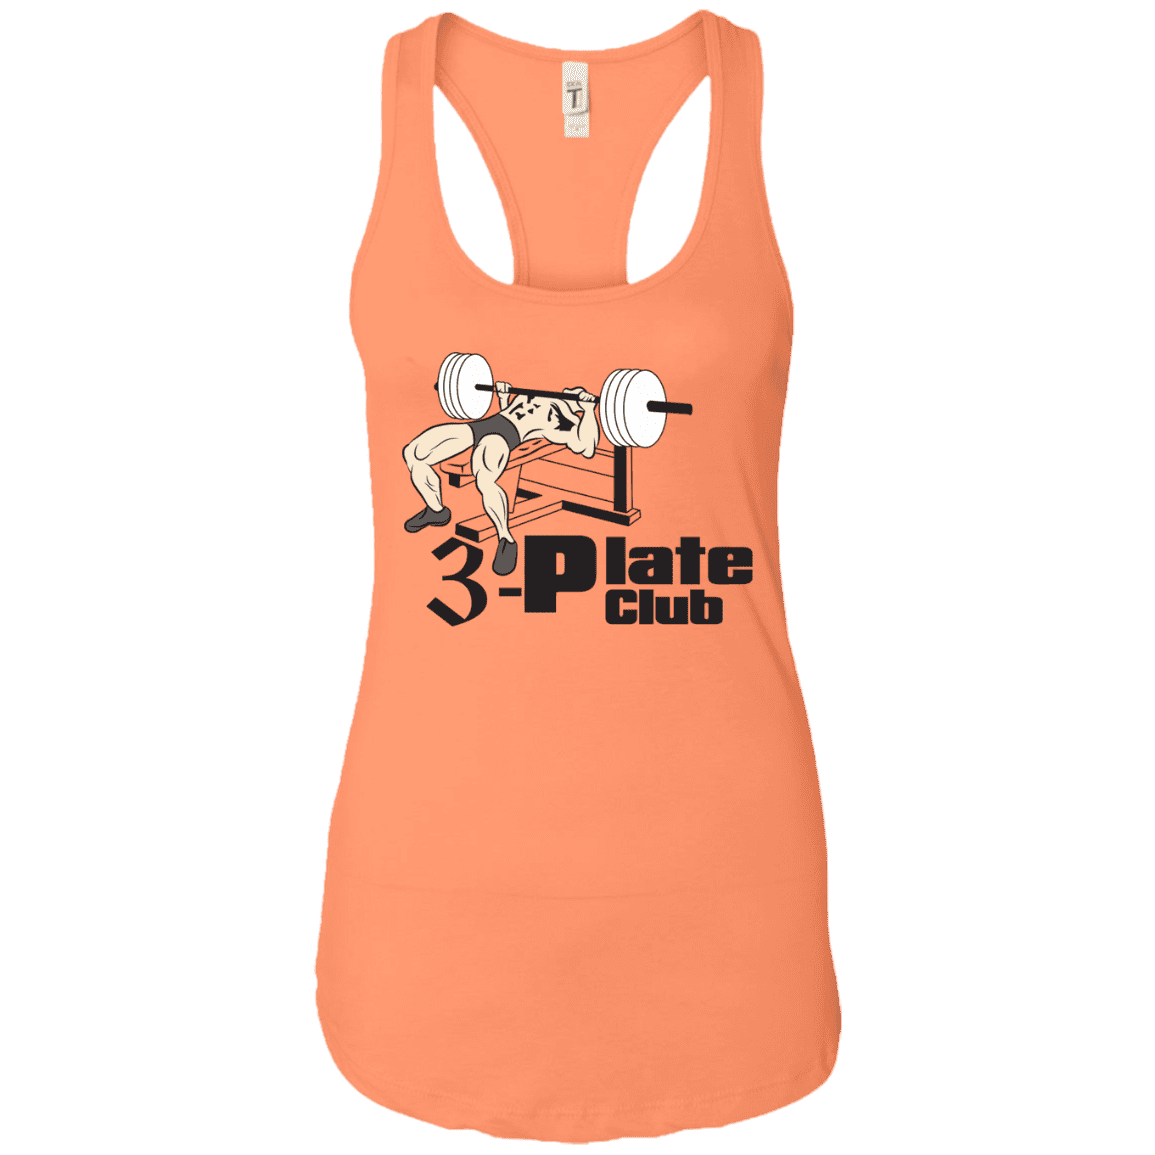 T-Shirts Light Orange / X-Small 3-Plate Club Racerback Tank